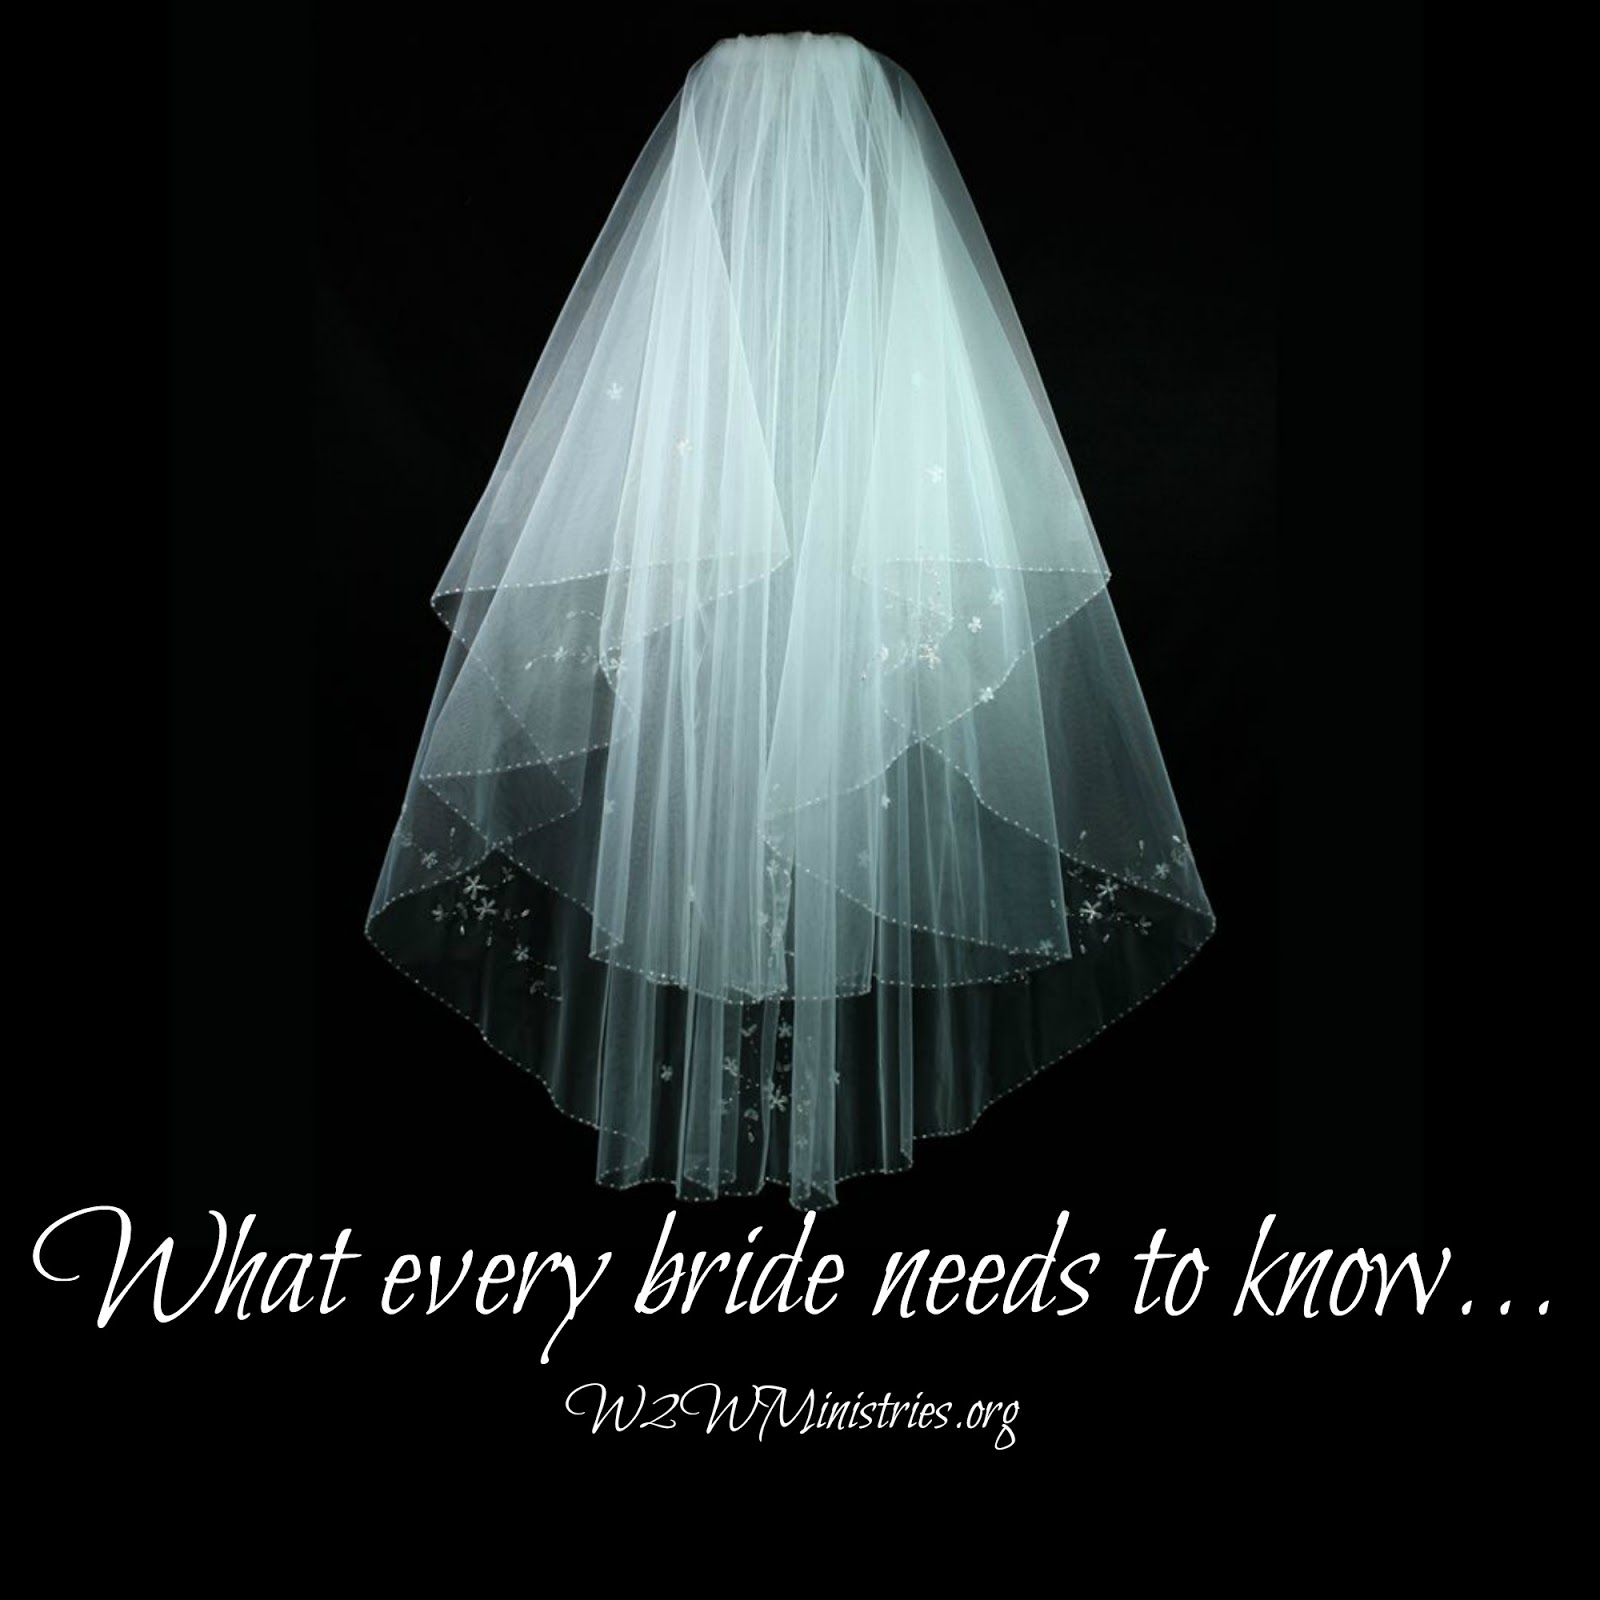 What every bride needs to know. #marriage #bride #groom #wedding